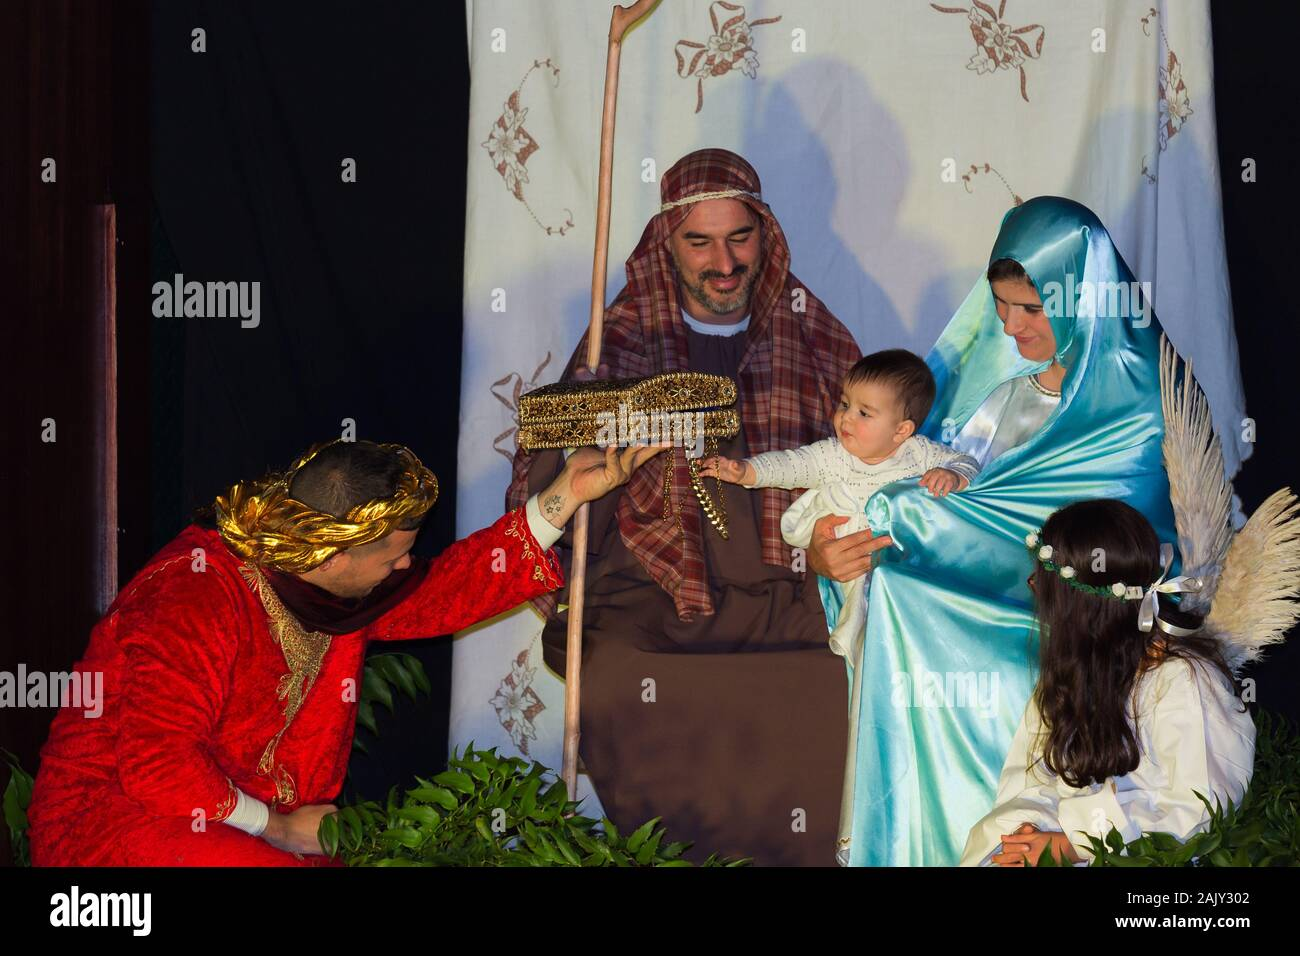 Reenactment of the christmas nativity scene with real people in Funchal city, Madeira island, Portugal Stock Photo